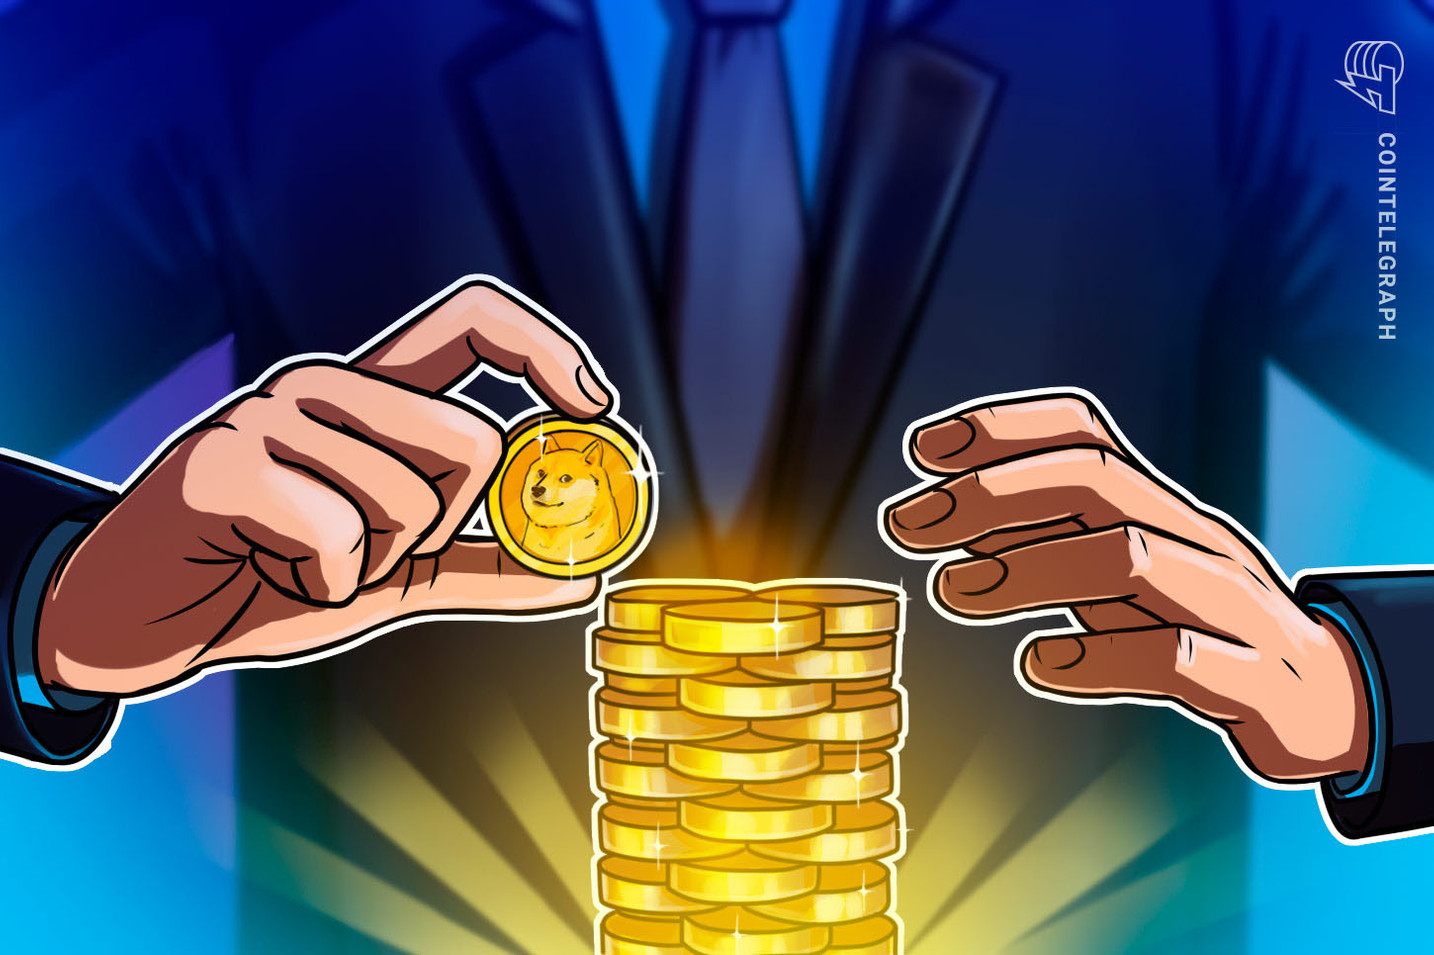 Wen Dogecoin moon? On-chain data and trading volumes suggest soon